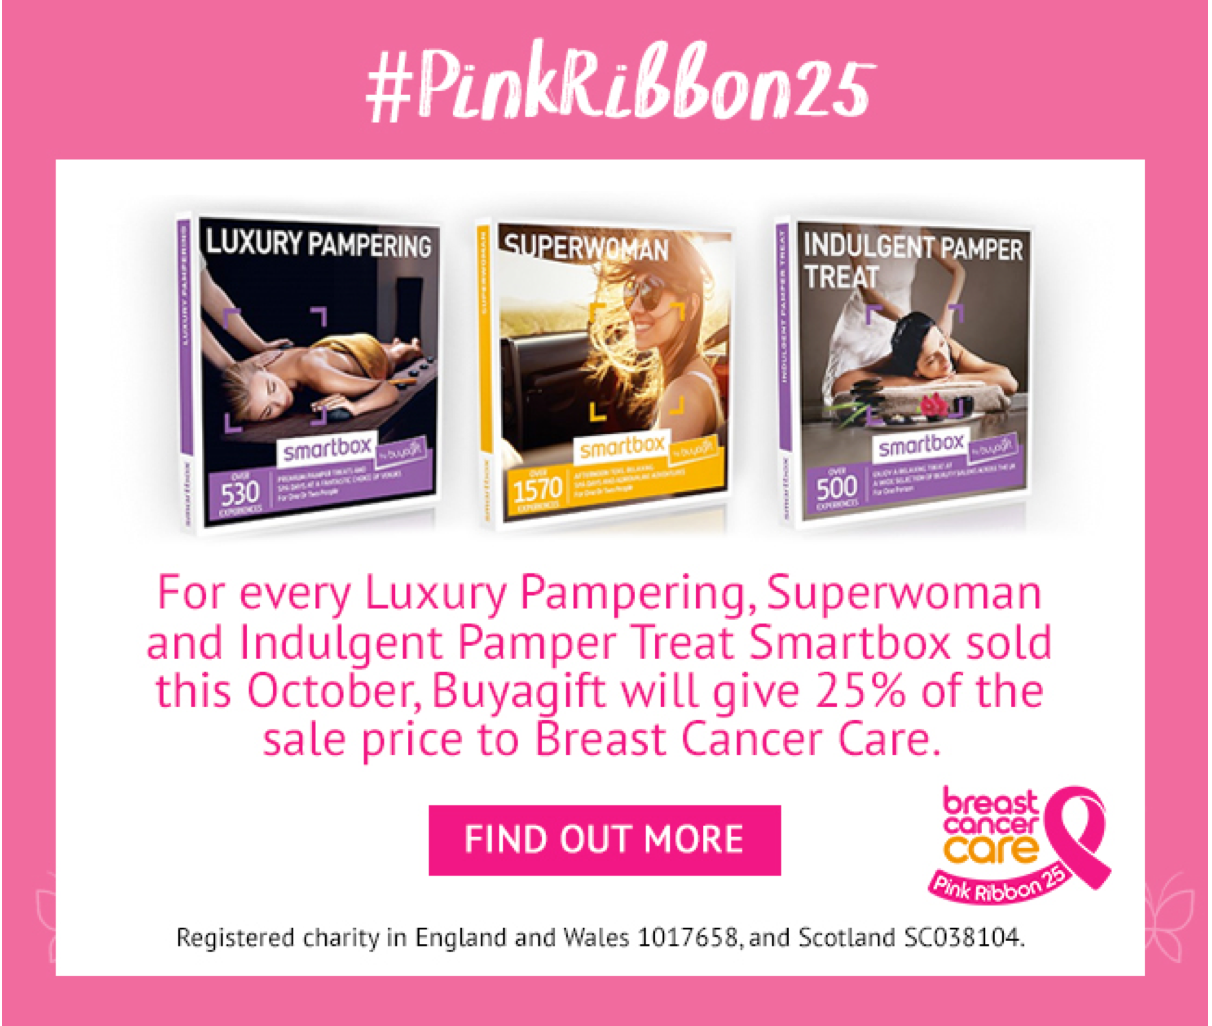 For every luxury pampering, Superwoman and indulgent pamper treat Smartbox sold this October, Buyagift will give 25% of the sale price to Breast Cancer Care.